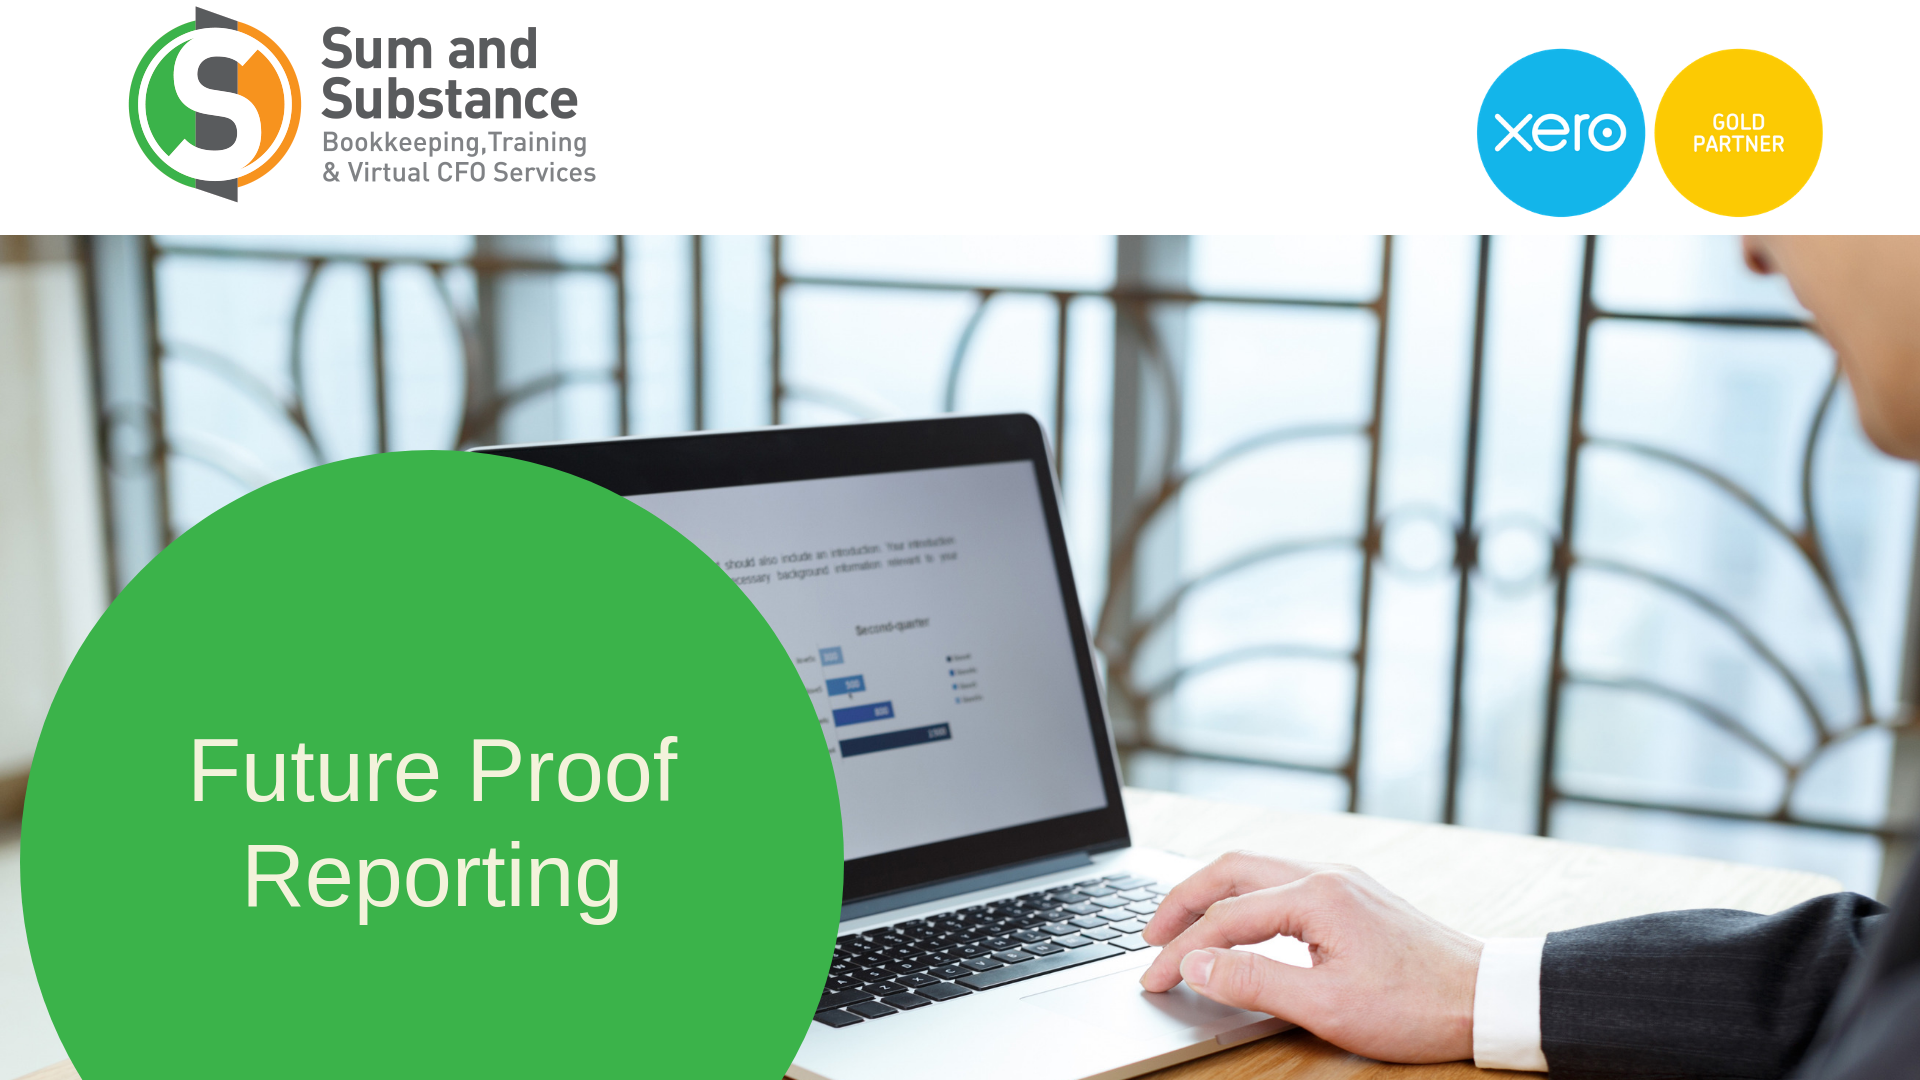 Future Proof - Reporting